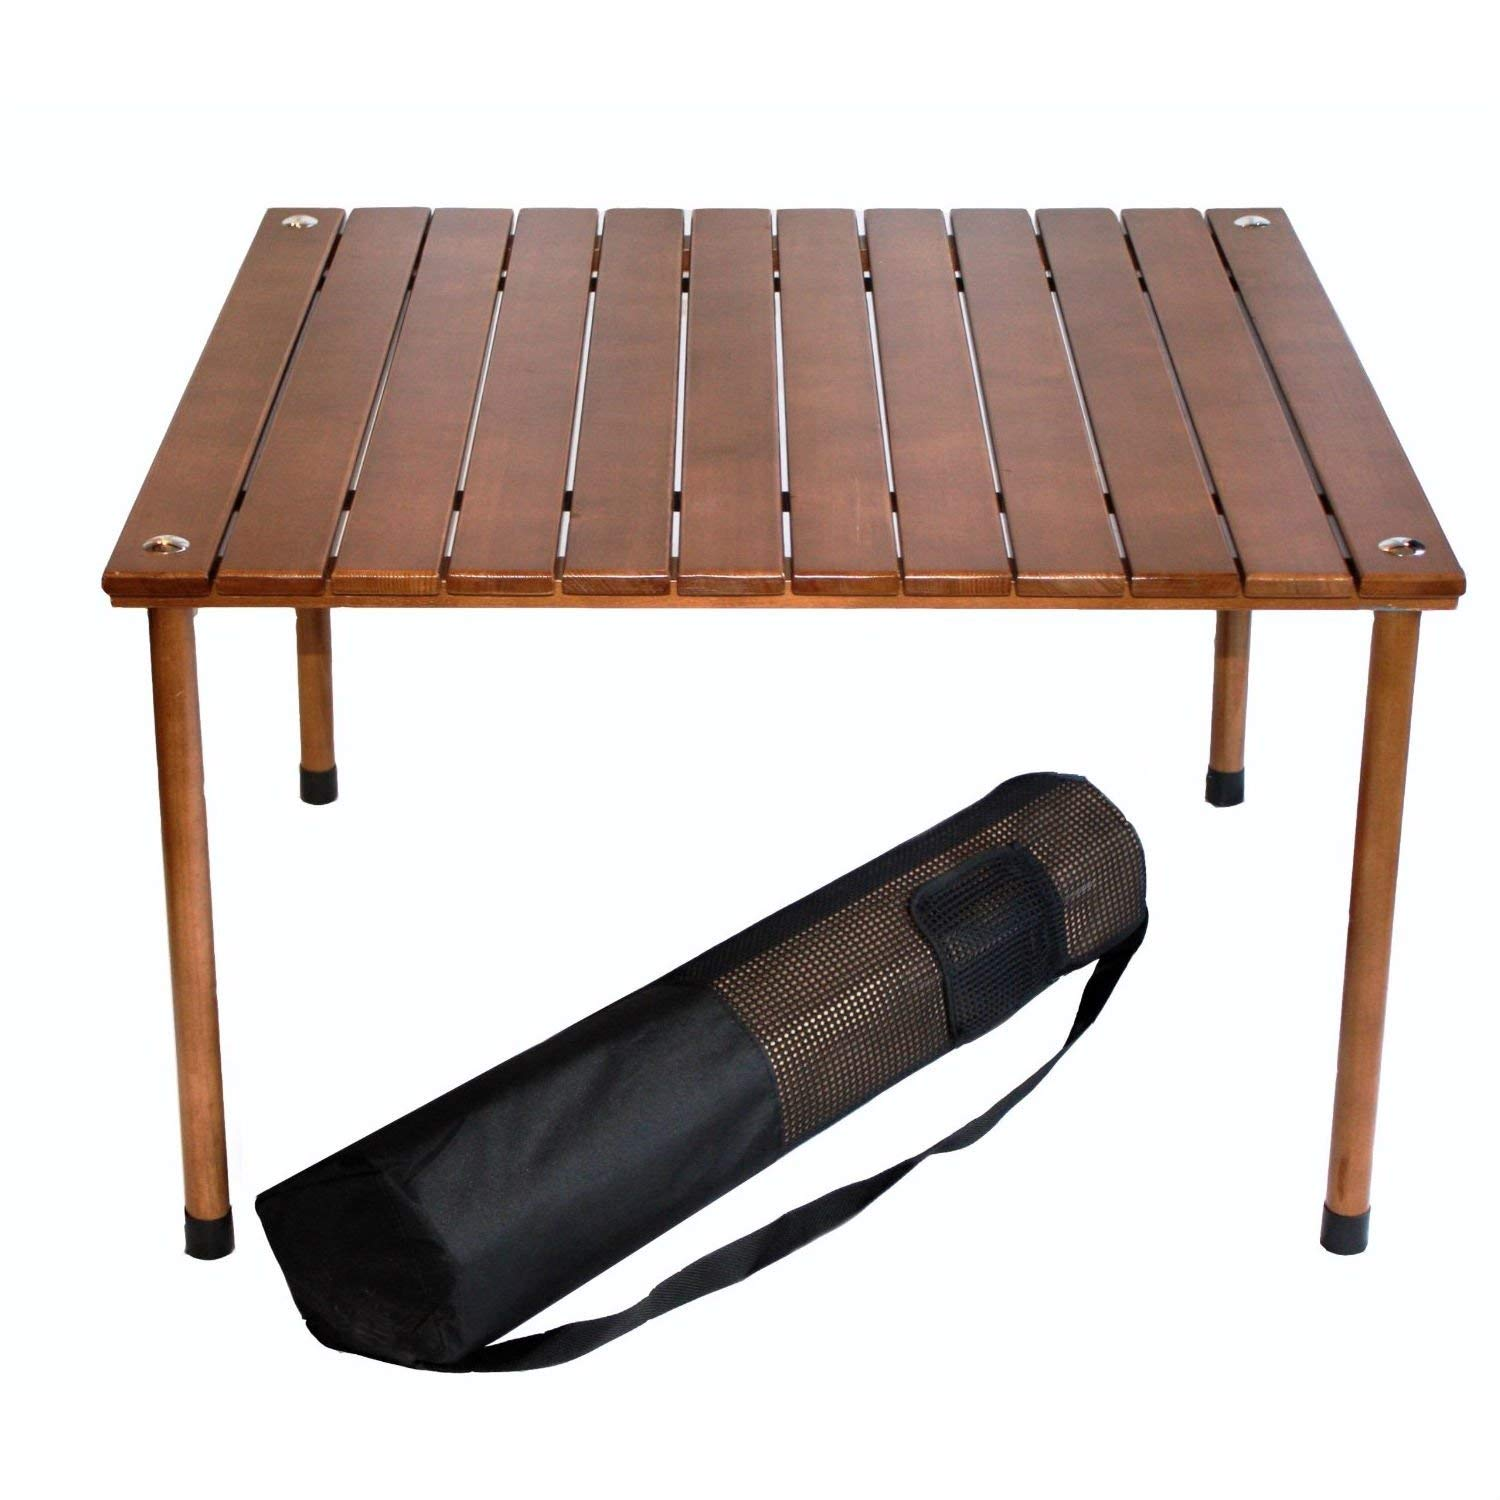 StarSun Depot Portable Patio Table with Brown Solid Wood Top and Carry Bag